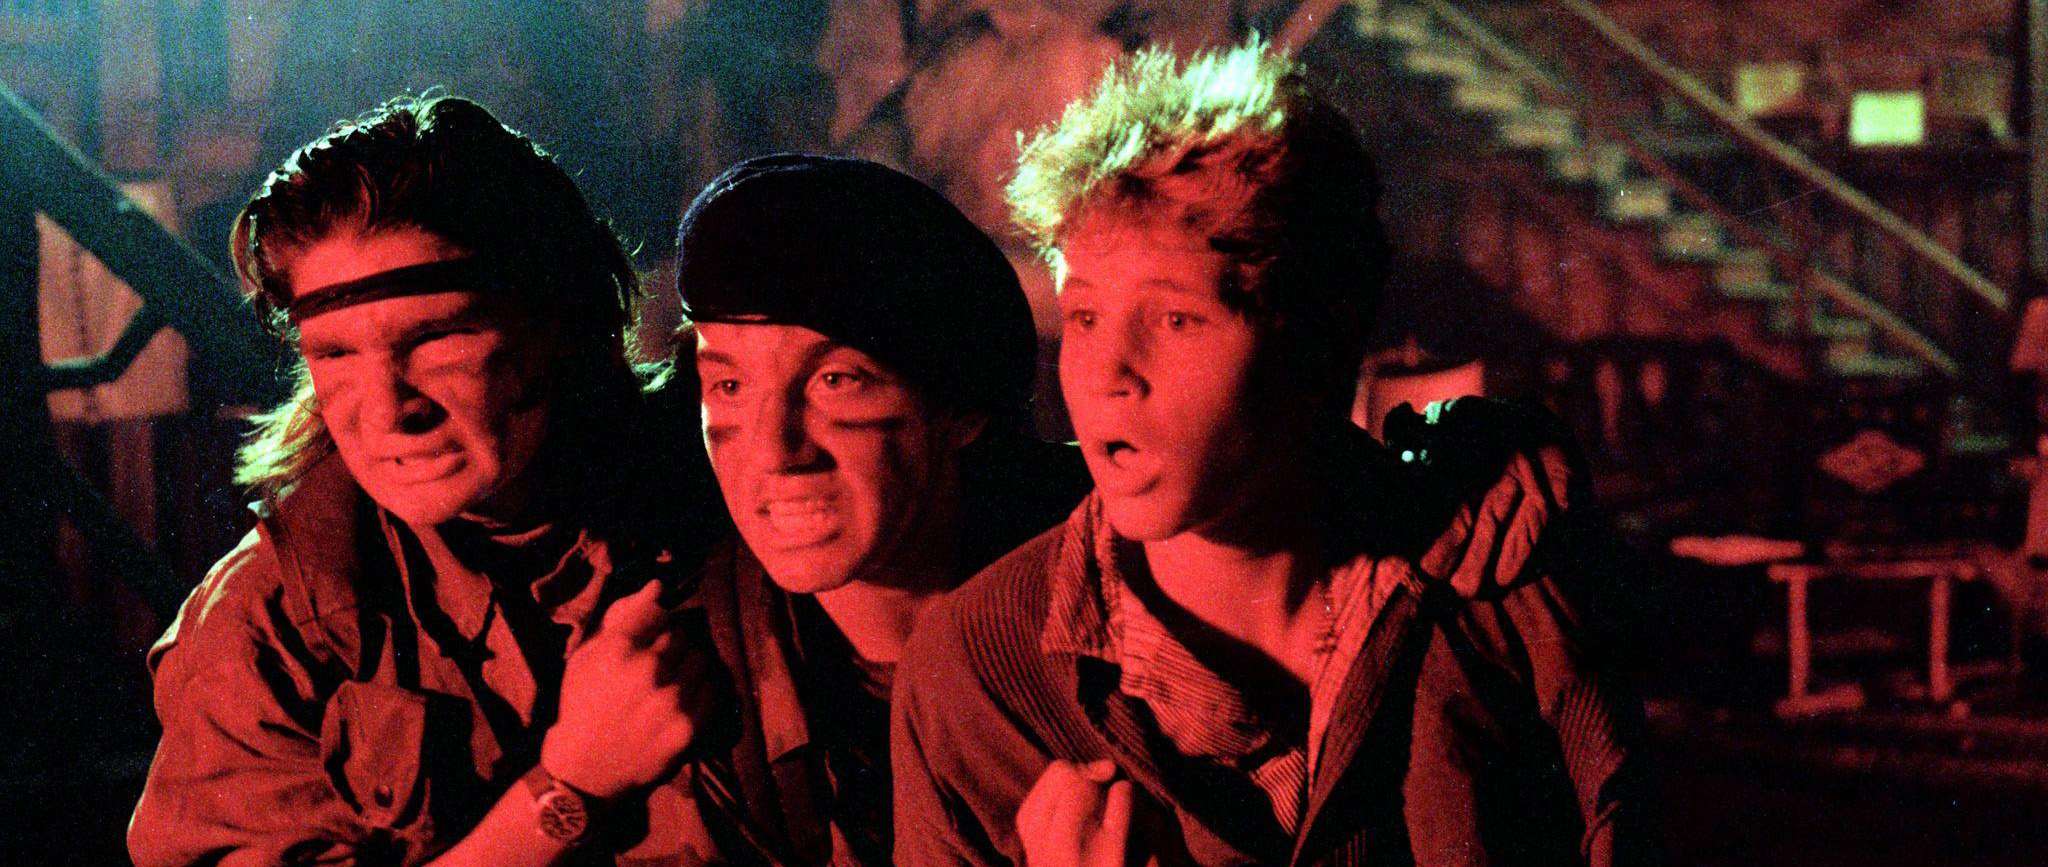 still-of-corey-feldman-corey-haim-and-jamison-newlander-in-the-lost-boys-1987-large-picture